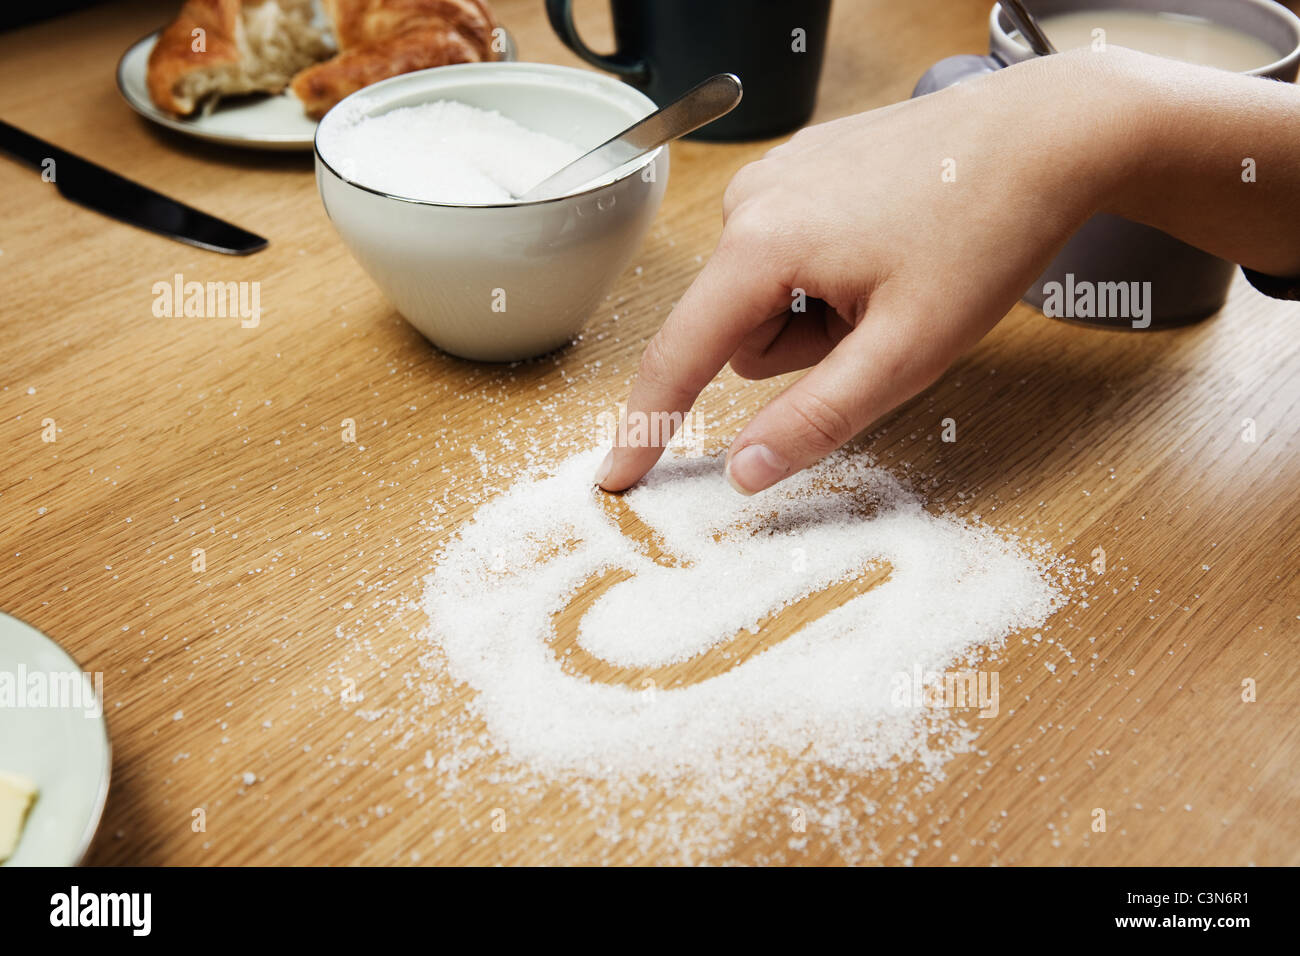 Girl drawing hart in sugar on table - Stock Image